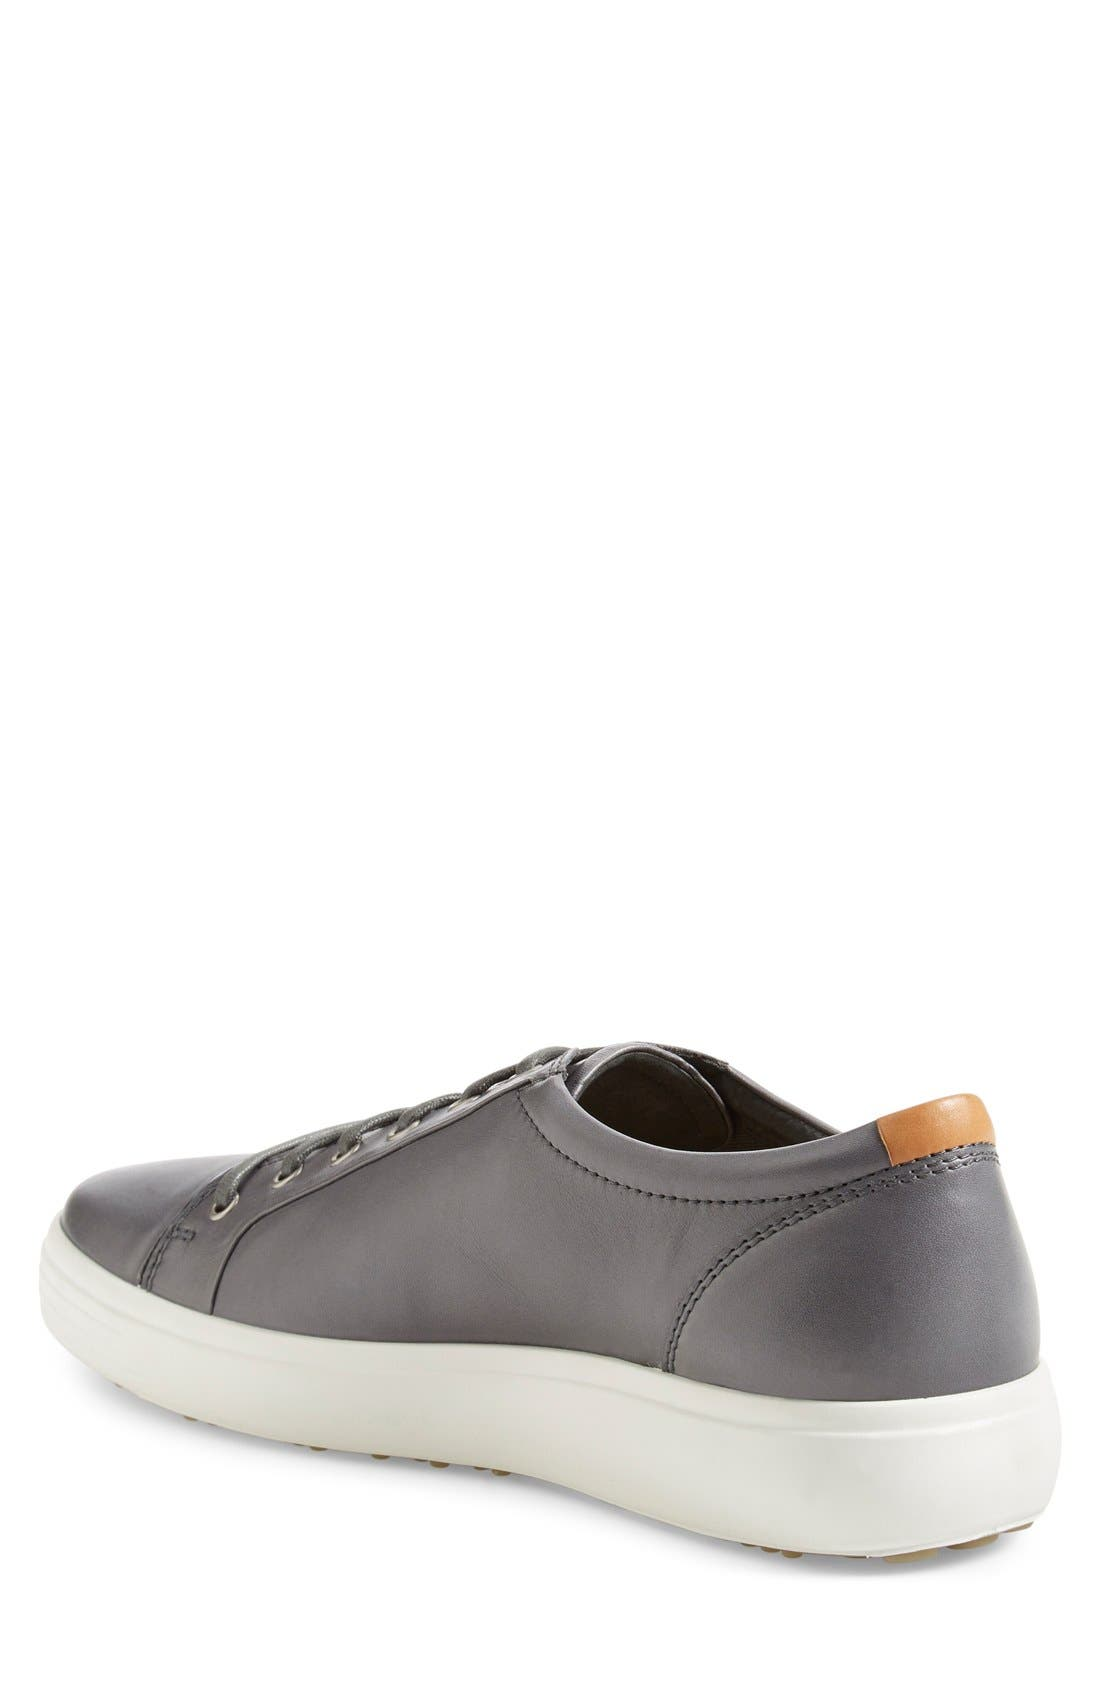 Soft VII Lace-Up Sneaker,                             Alternate thumbnail 33, color,